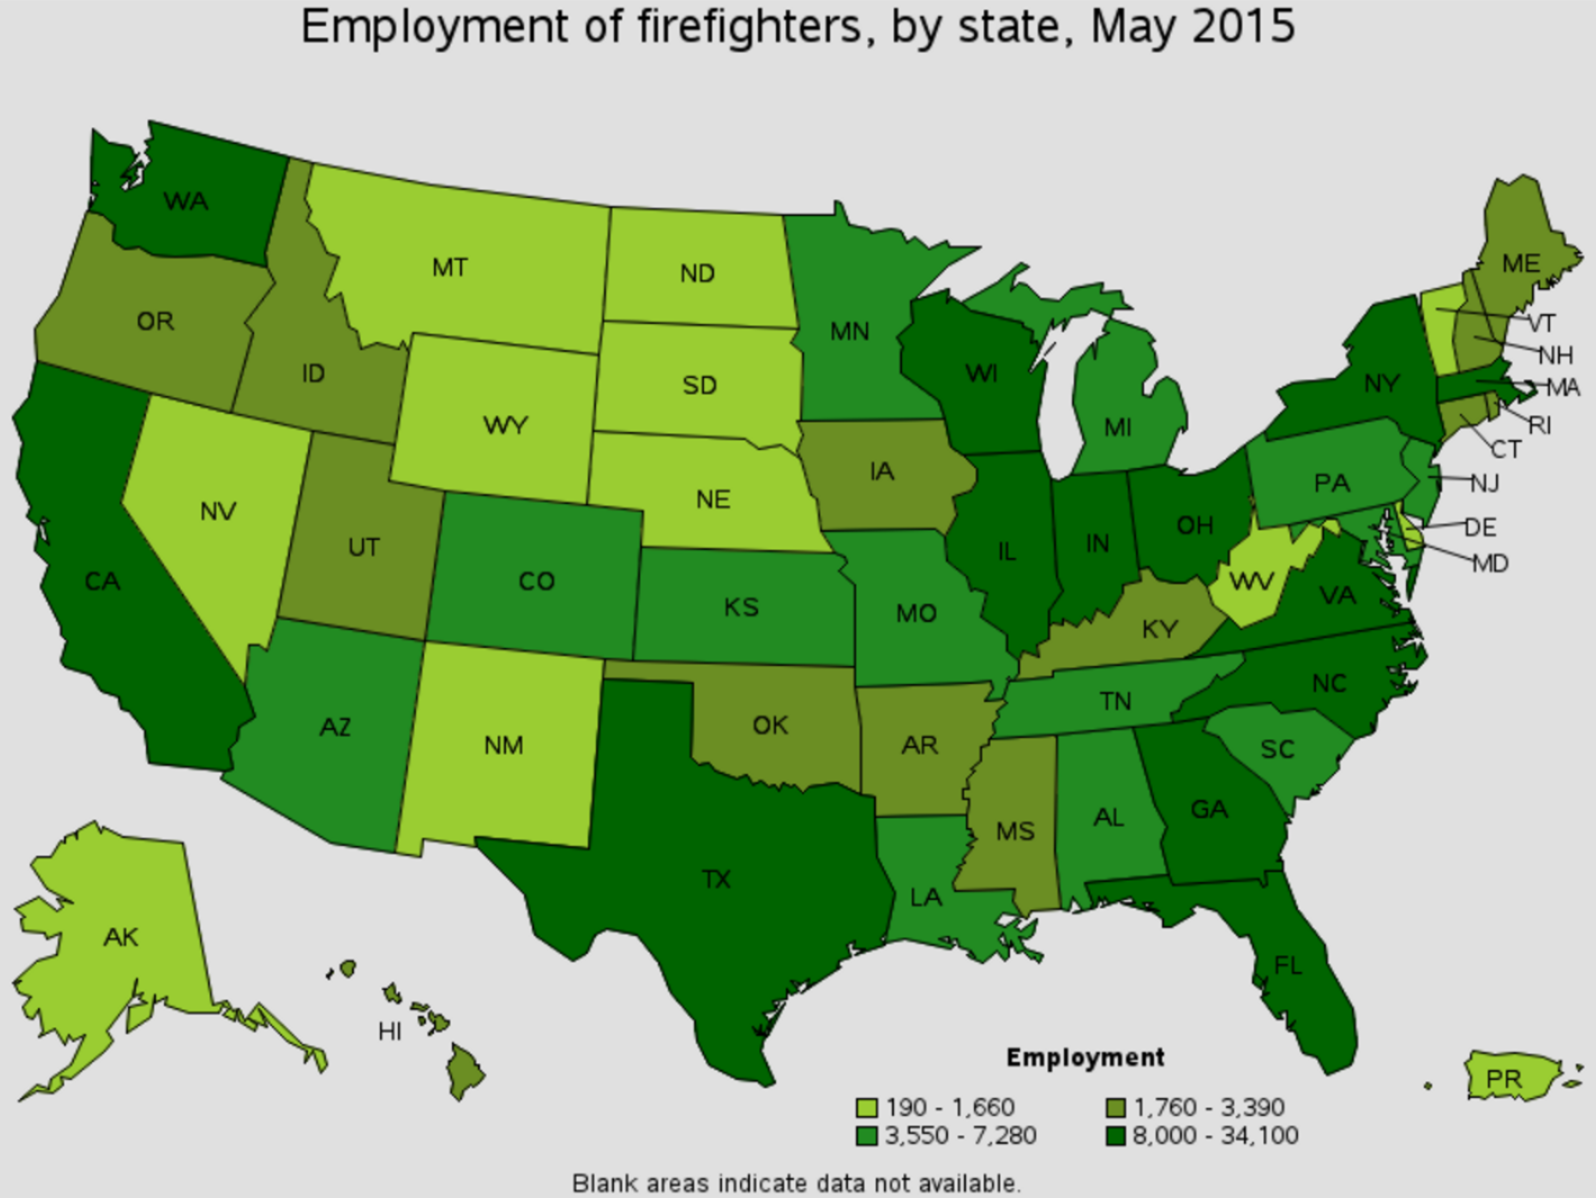 firefighter job outlook by state Midland Texas